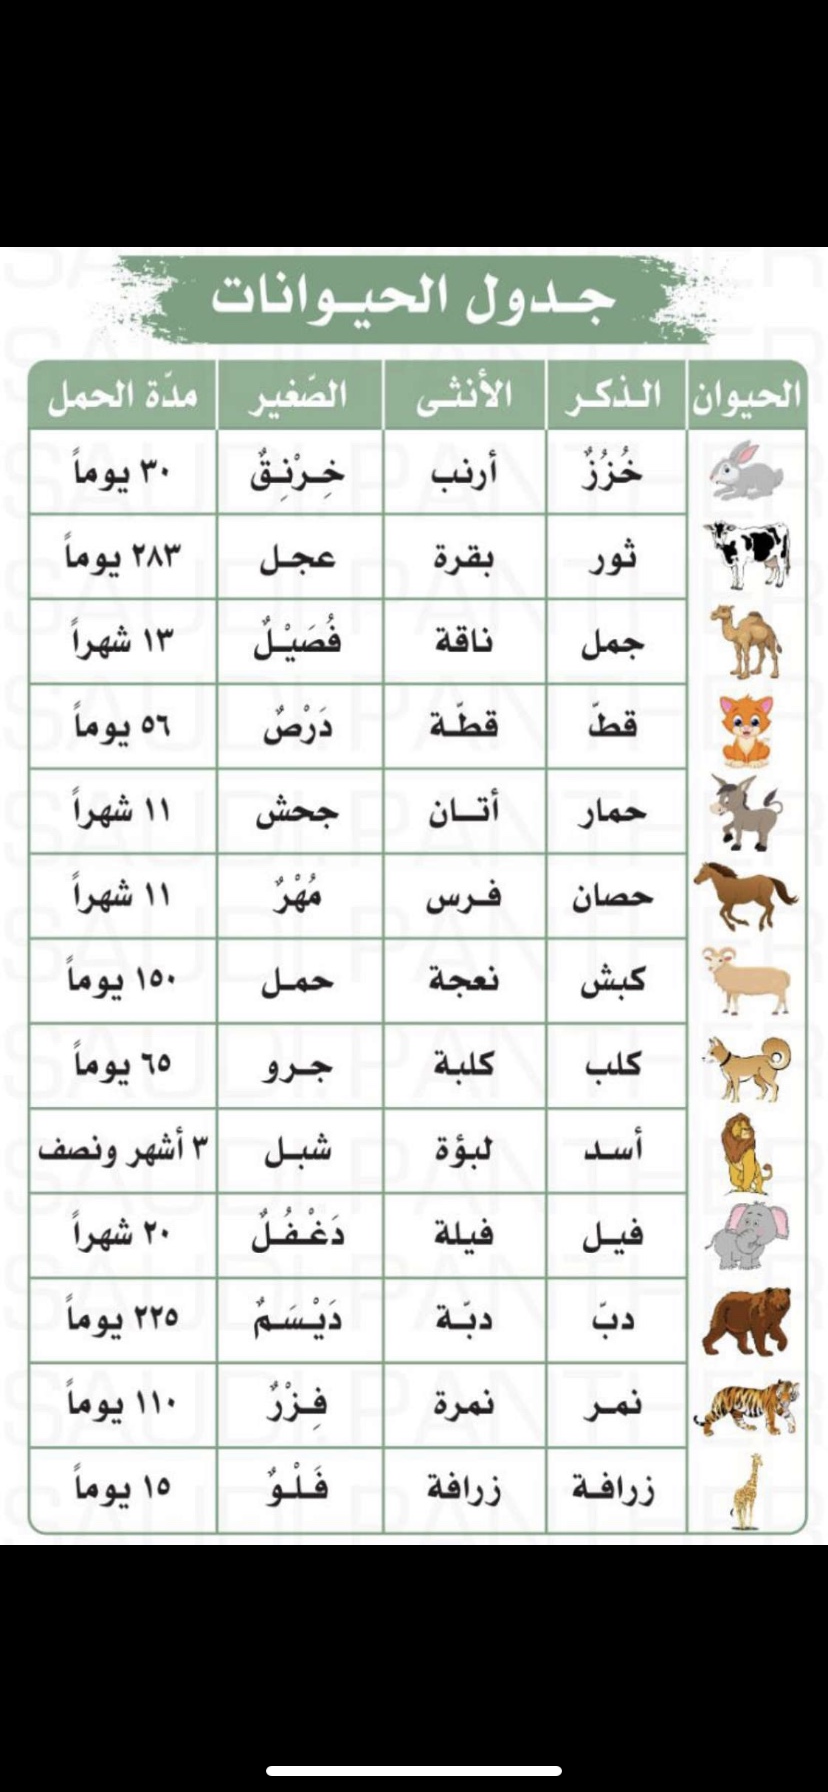 Pin By Wedyan Wedyan On معلومة Word Search Puzzle Words Word Search